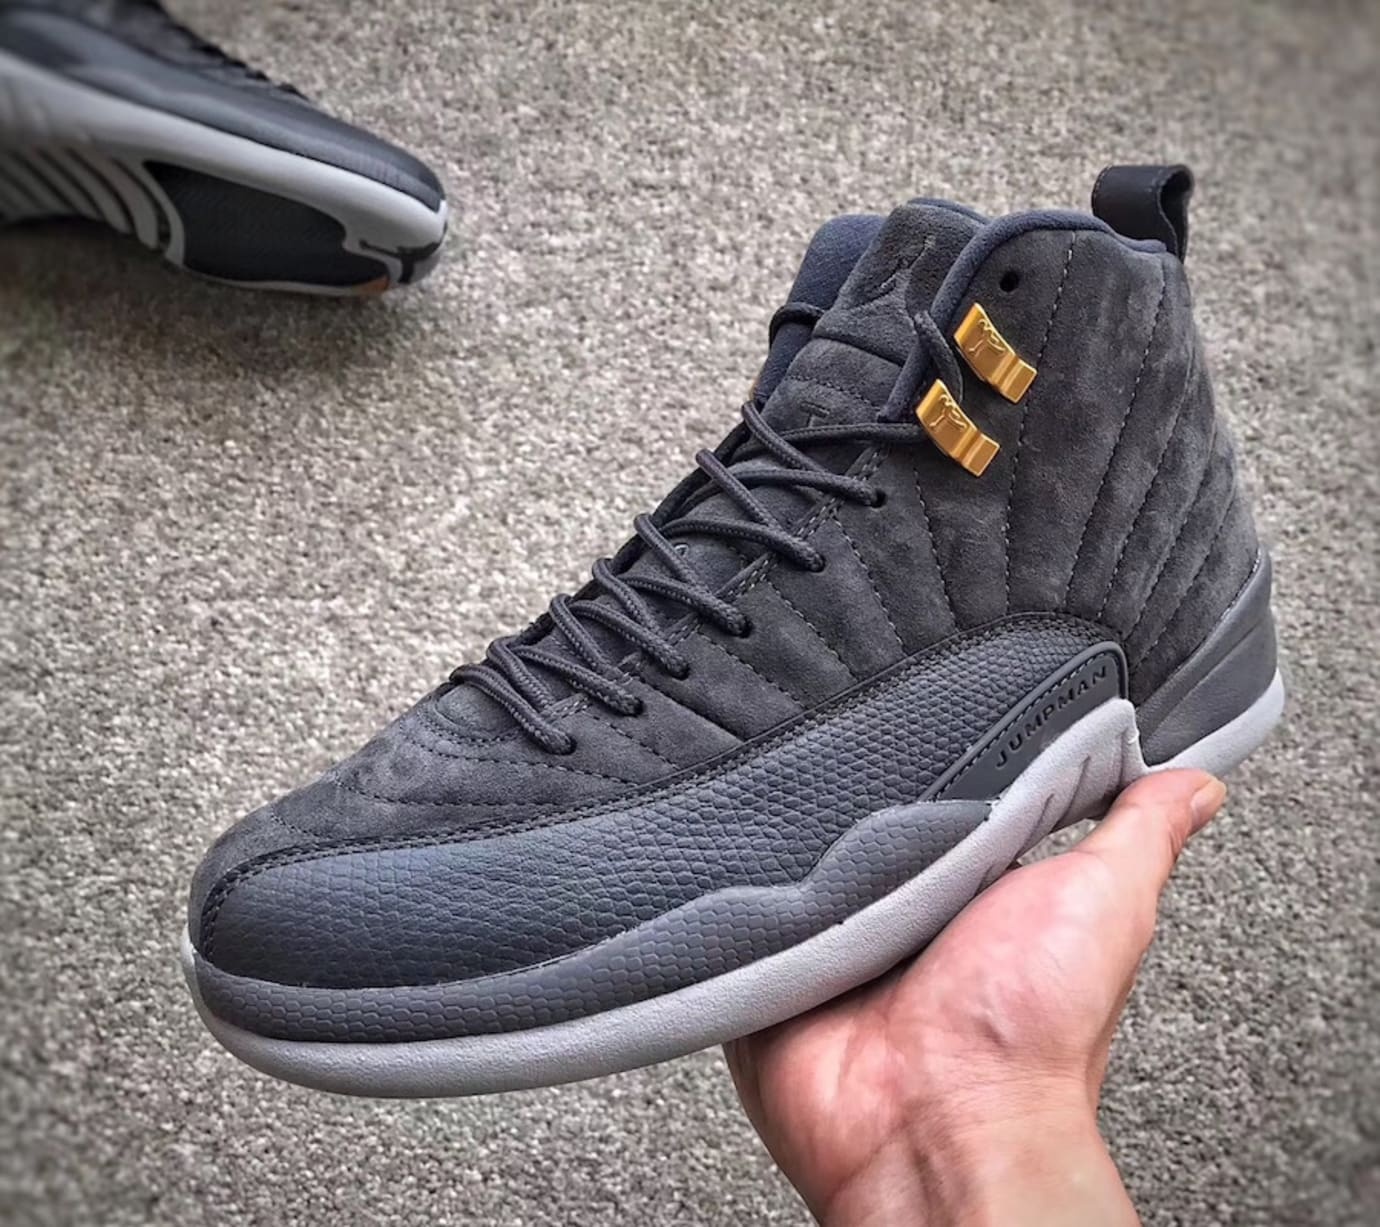 0a745ad64b3b9 Air Jordan 12 Dark Grey 2017 Release Date 130690-005 | Sole Collector